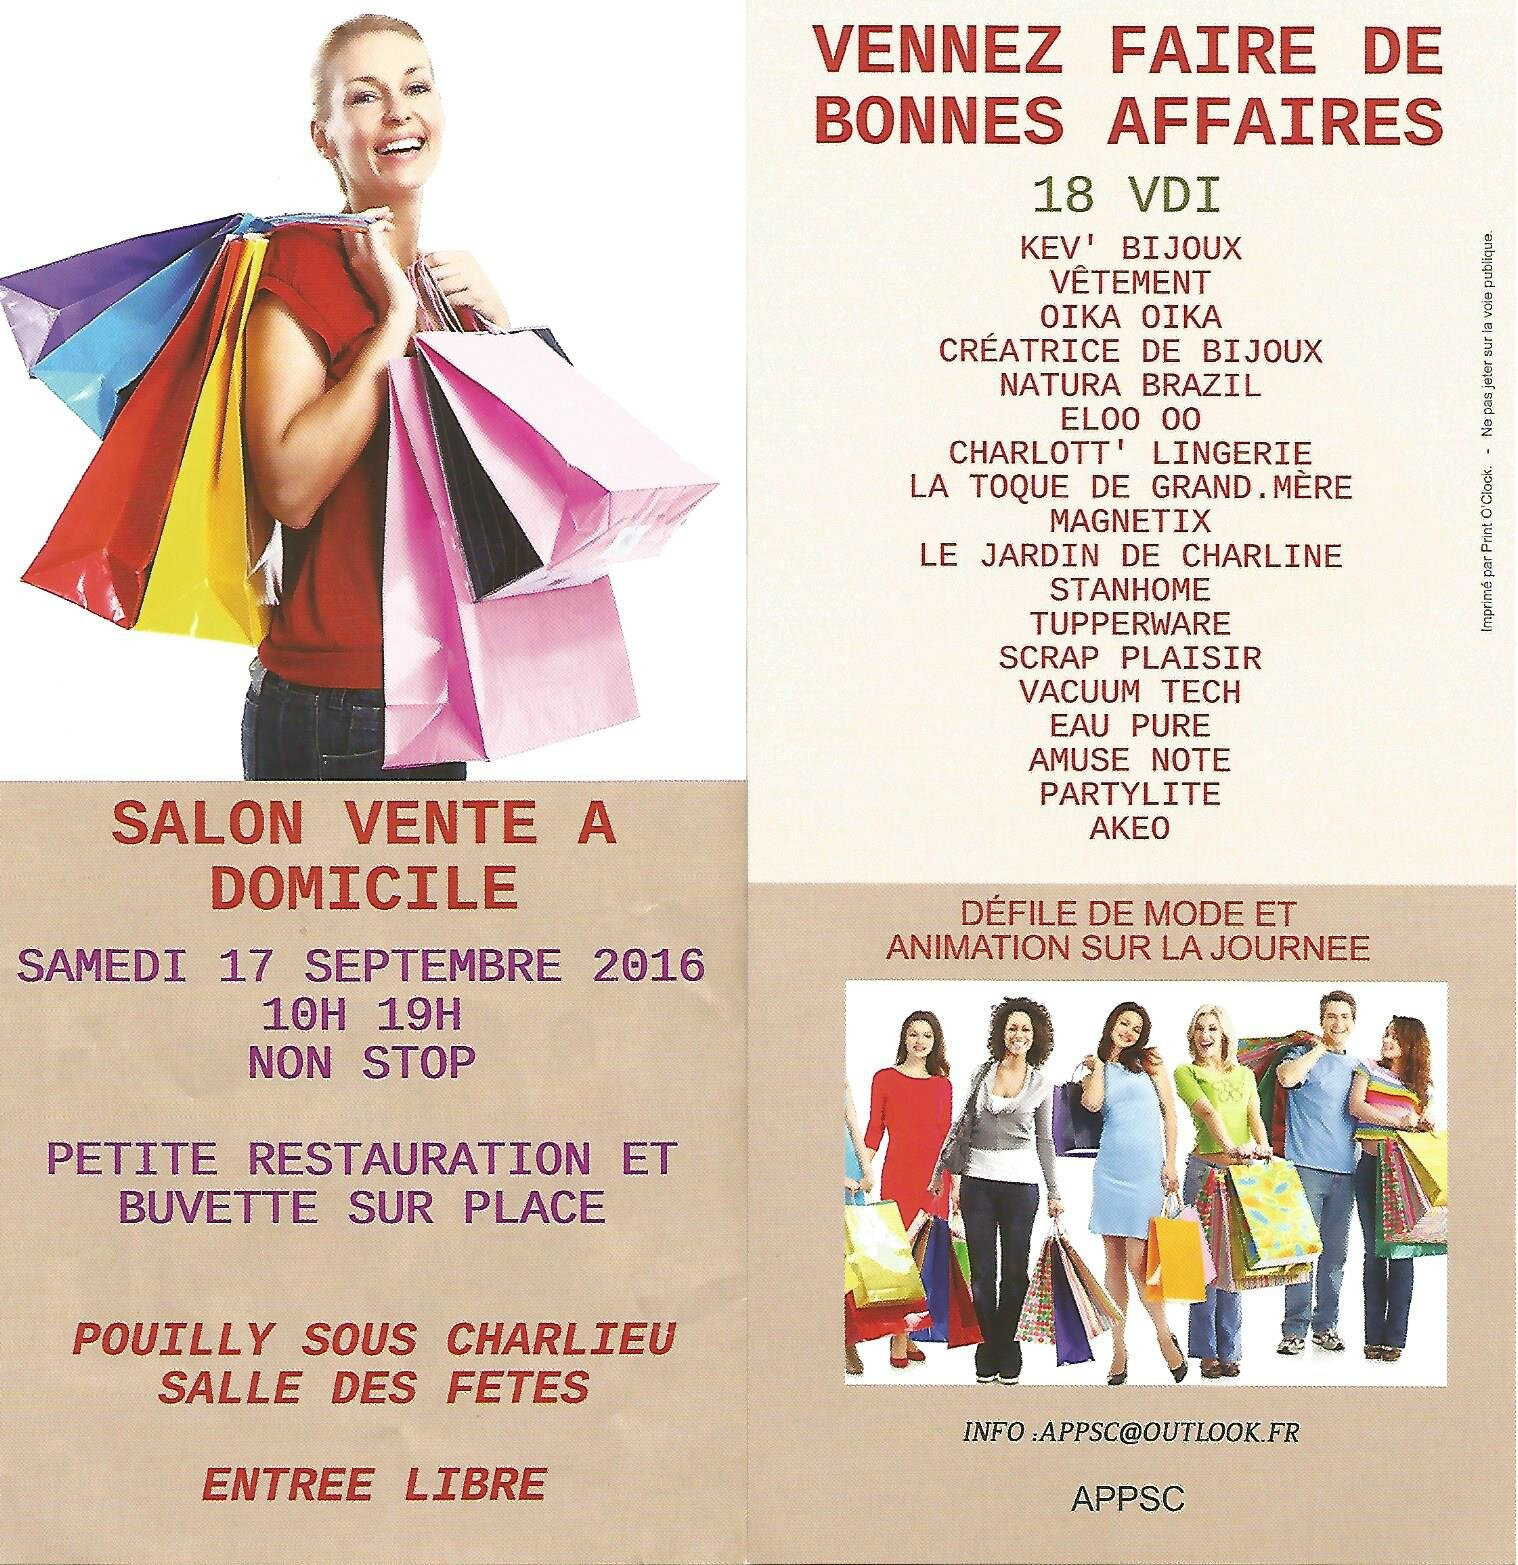 Salon vdi samedi 17 septembre 2016 pouilly sous charlieu for Salon vdi